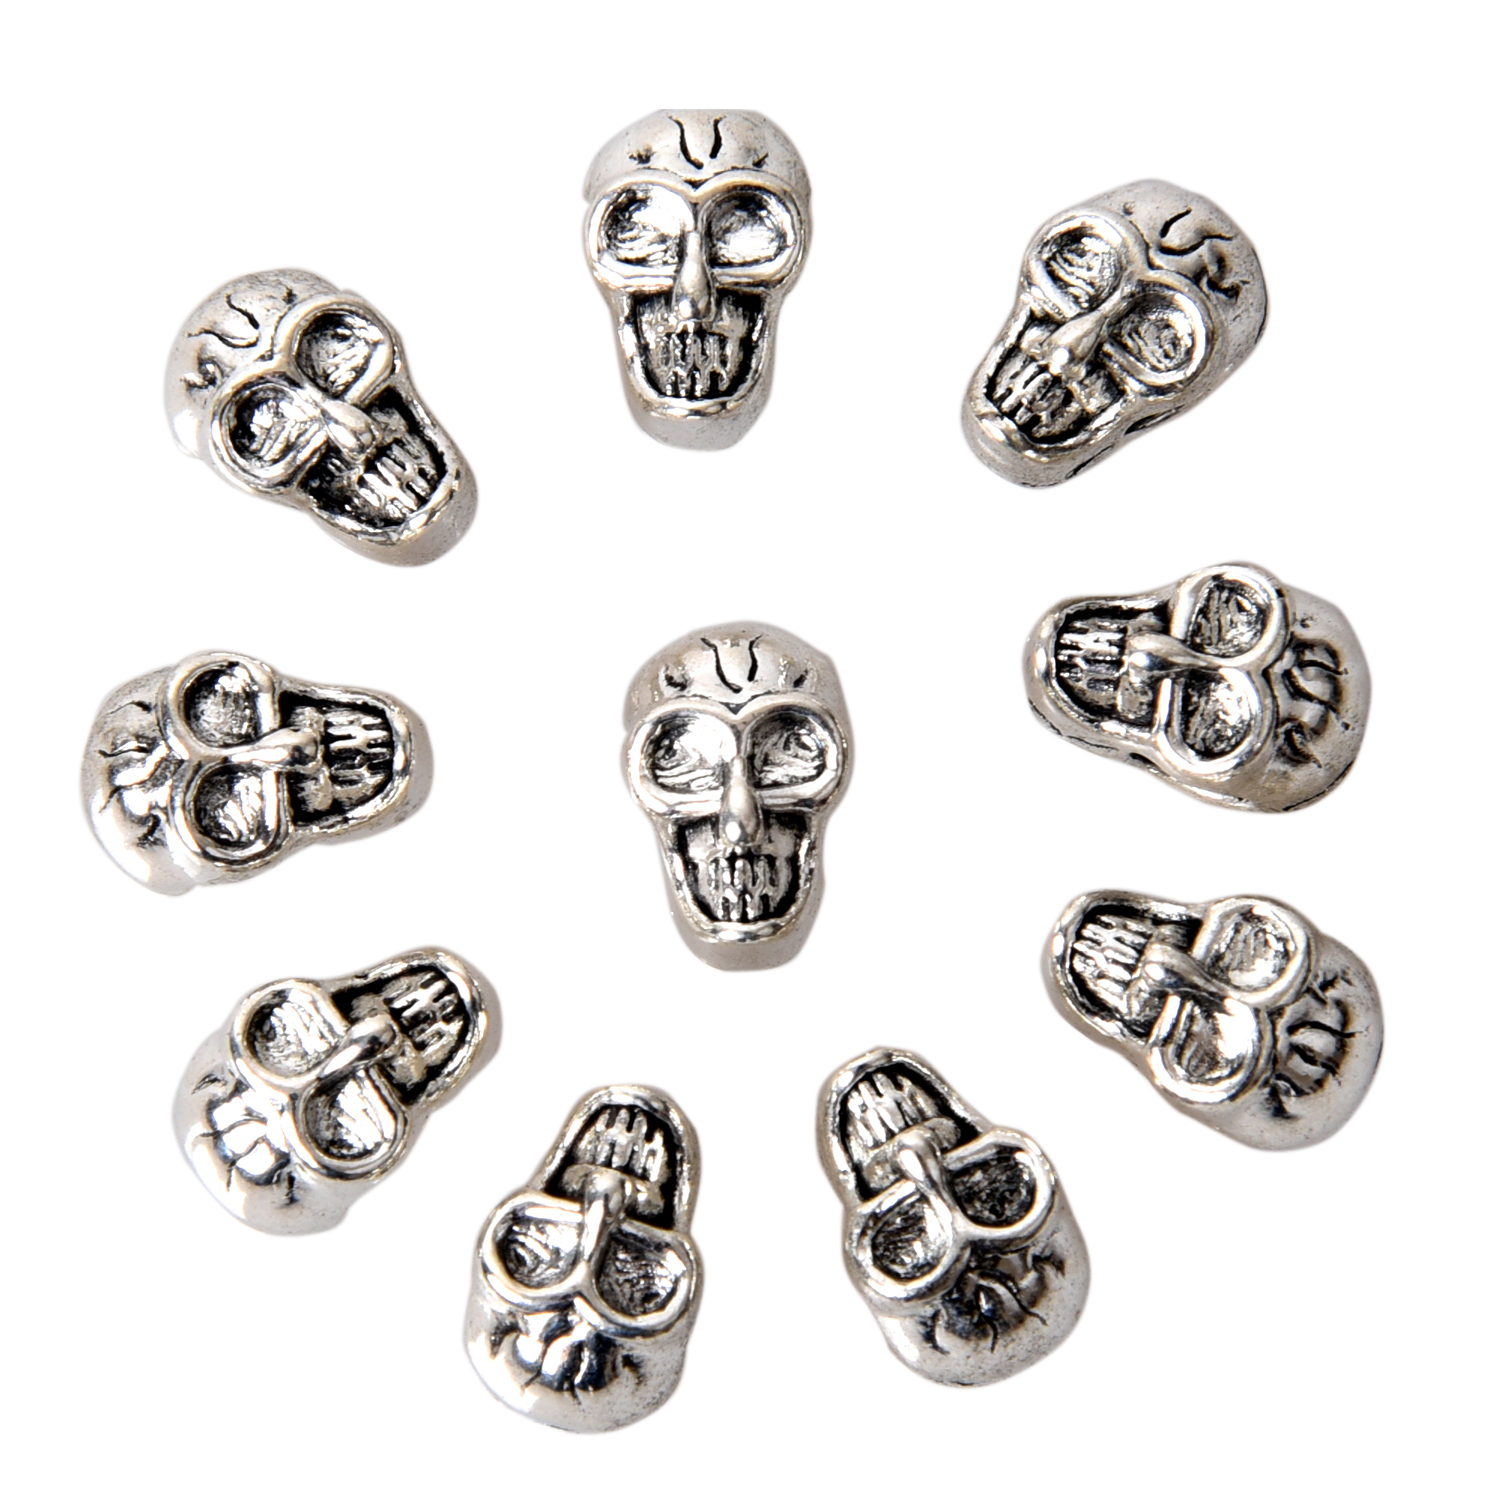 10pcs Antique Silver Charms Phoenix Alloy Bookmark Jewelry Making Beading